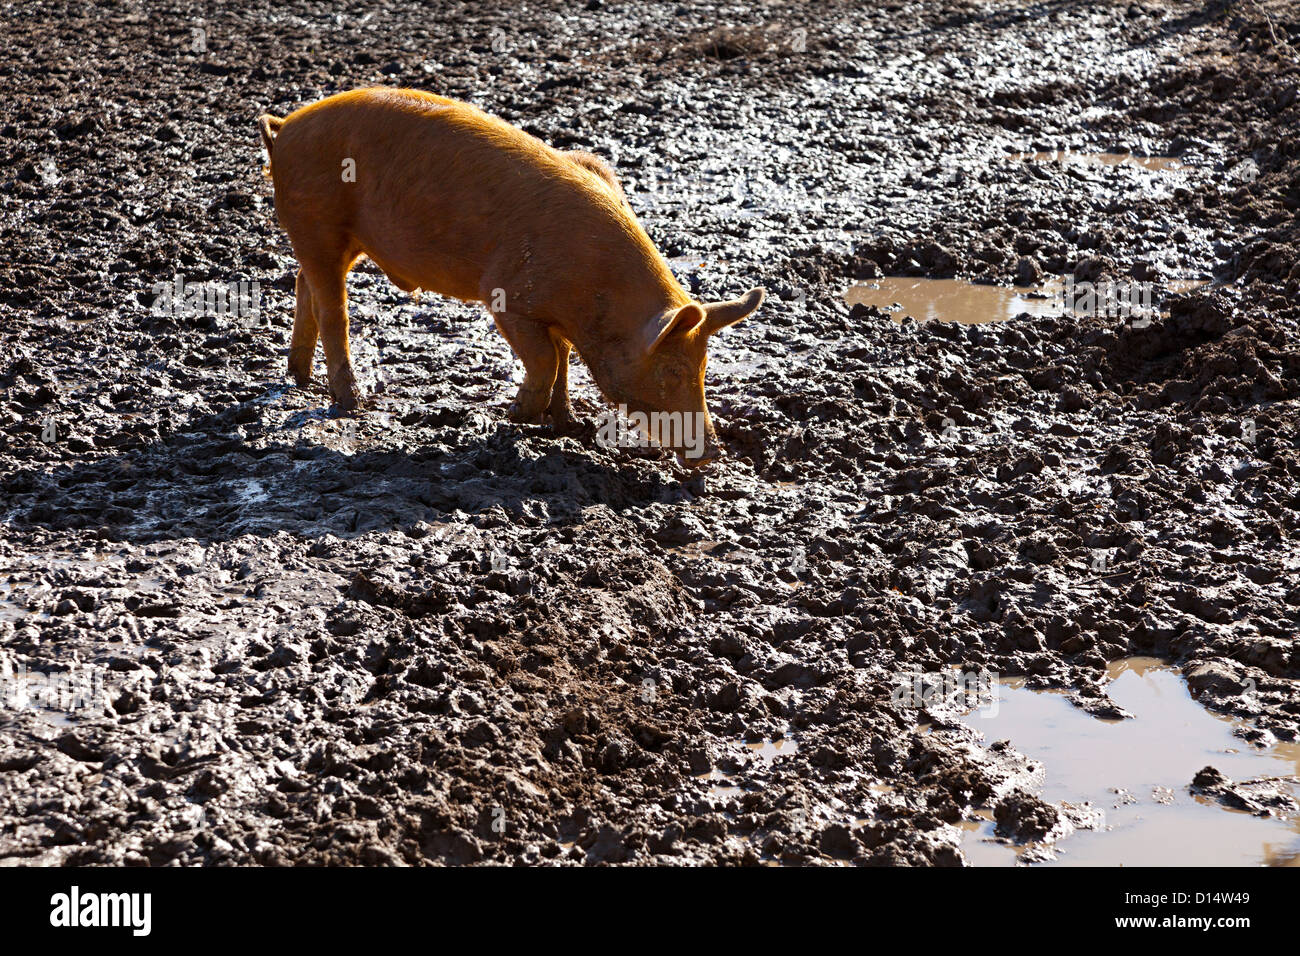 Cochon dans la boue, UK Photo Stock